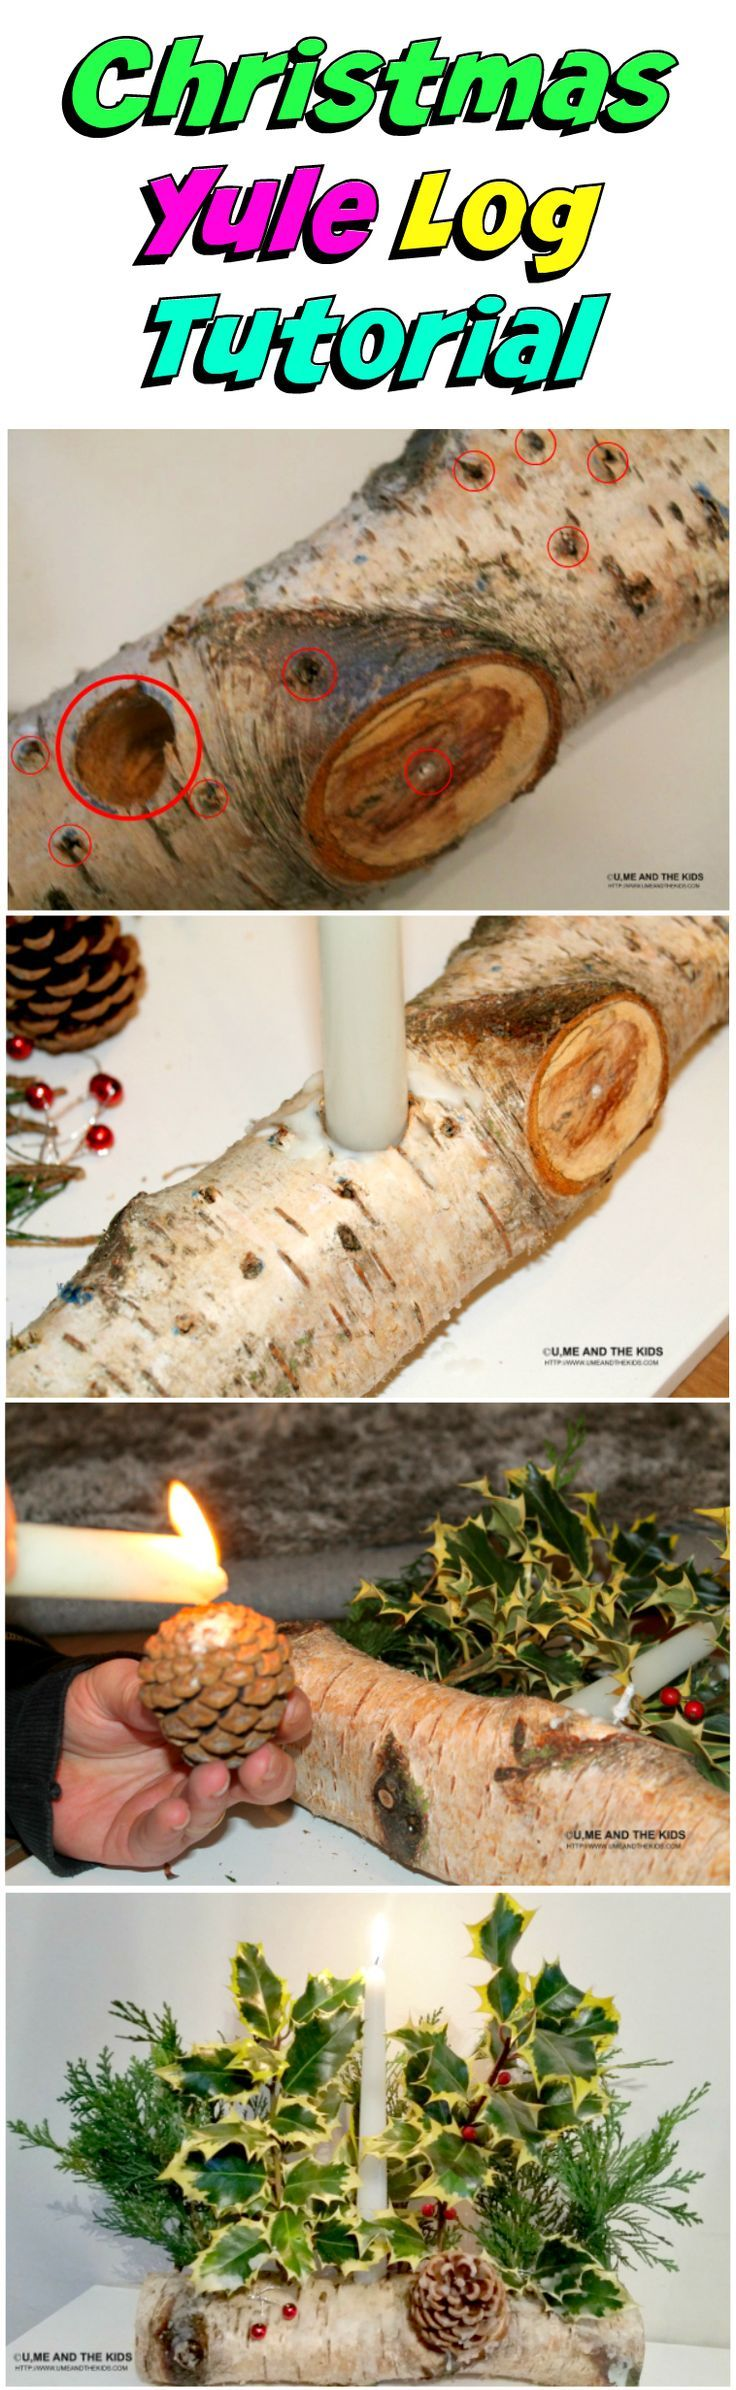 Log Crafts The 25 Best Wood Log Crafts Ideas On Pinterest Tree Slices Log